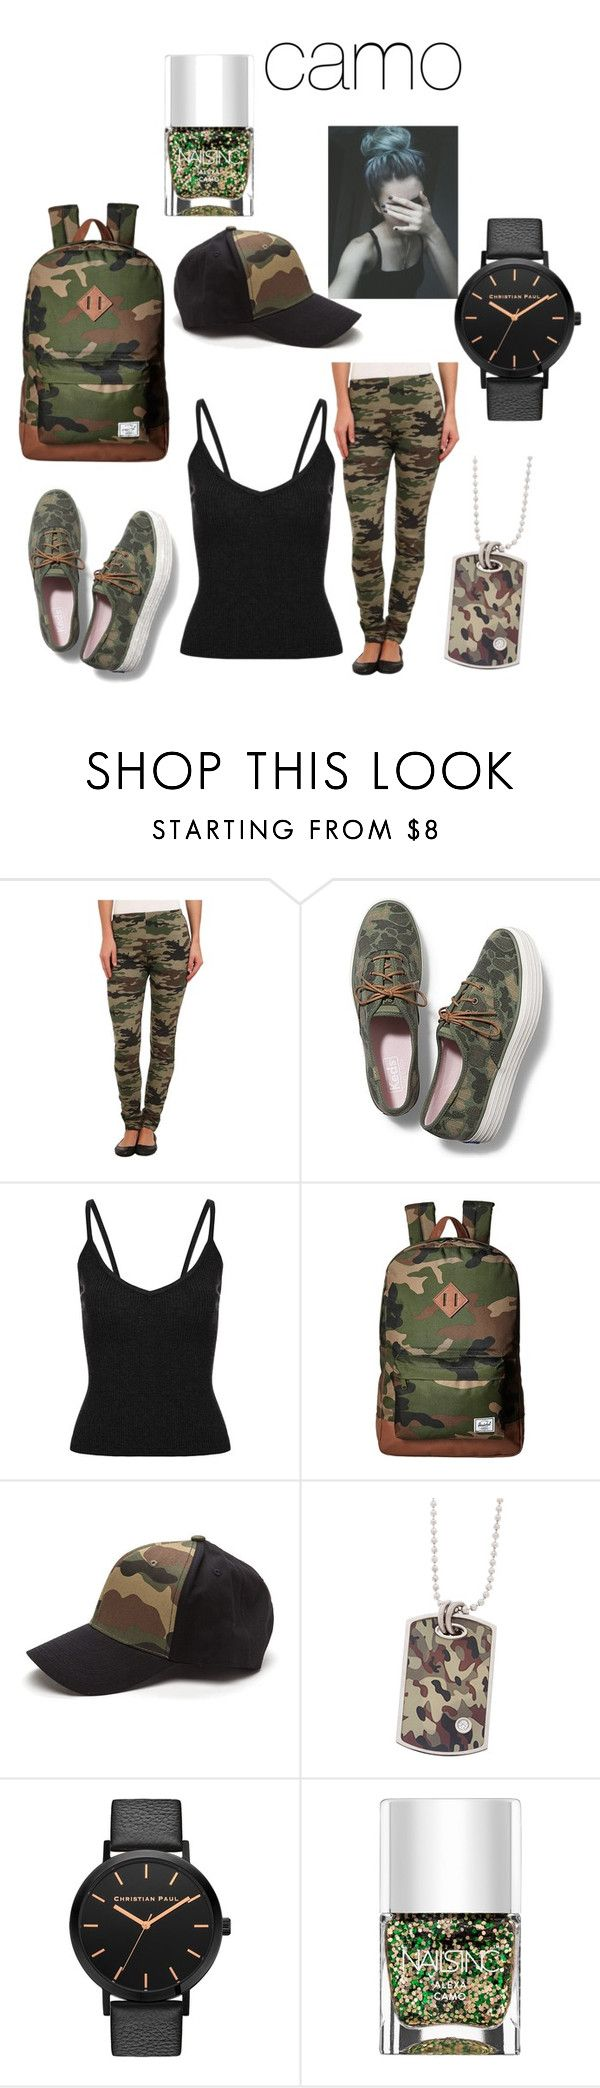 """cute camo outfit"" by polarbear786 on Polyvore featuring Plush, Keds, Herschel Supply Co. and Nails Inc."